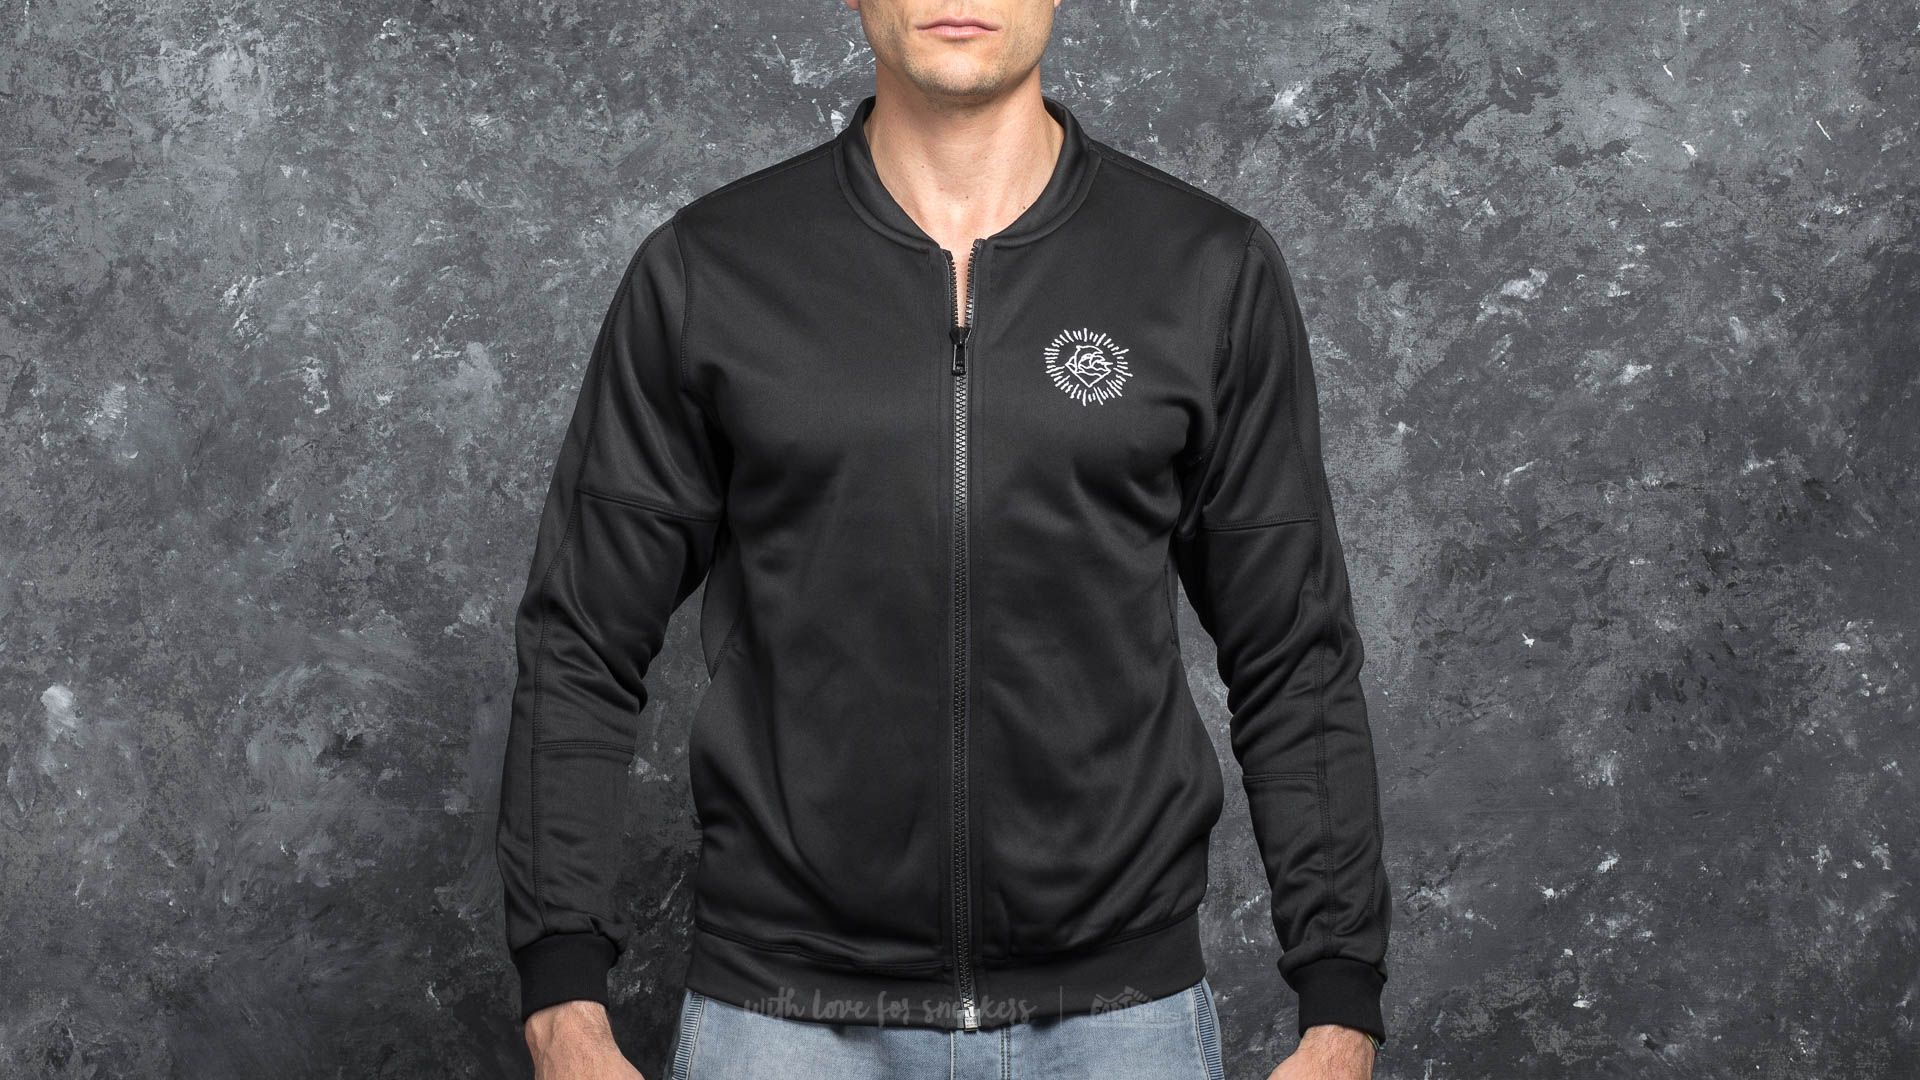 Pink Dolphin Wave Performance Jacket Black - 17112